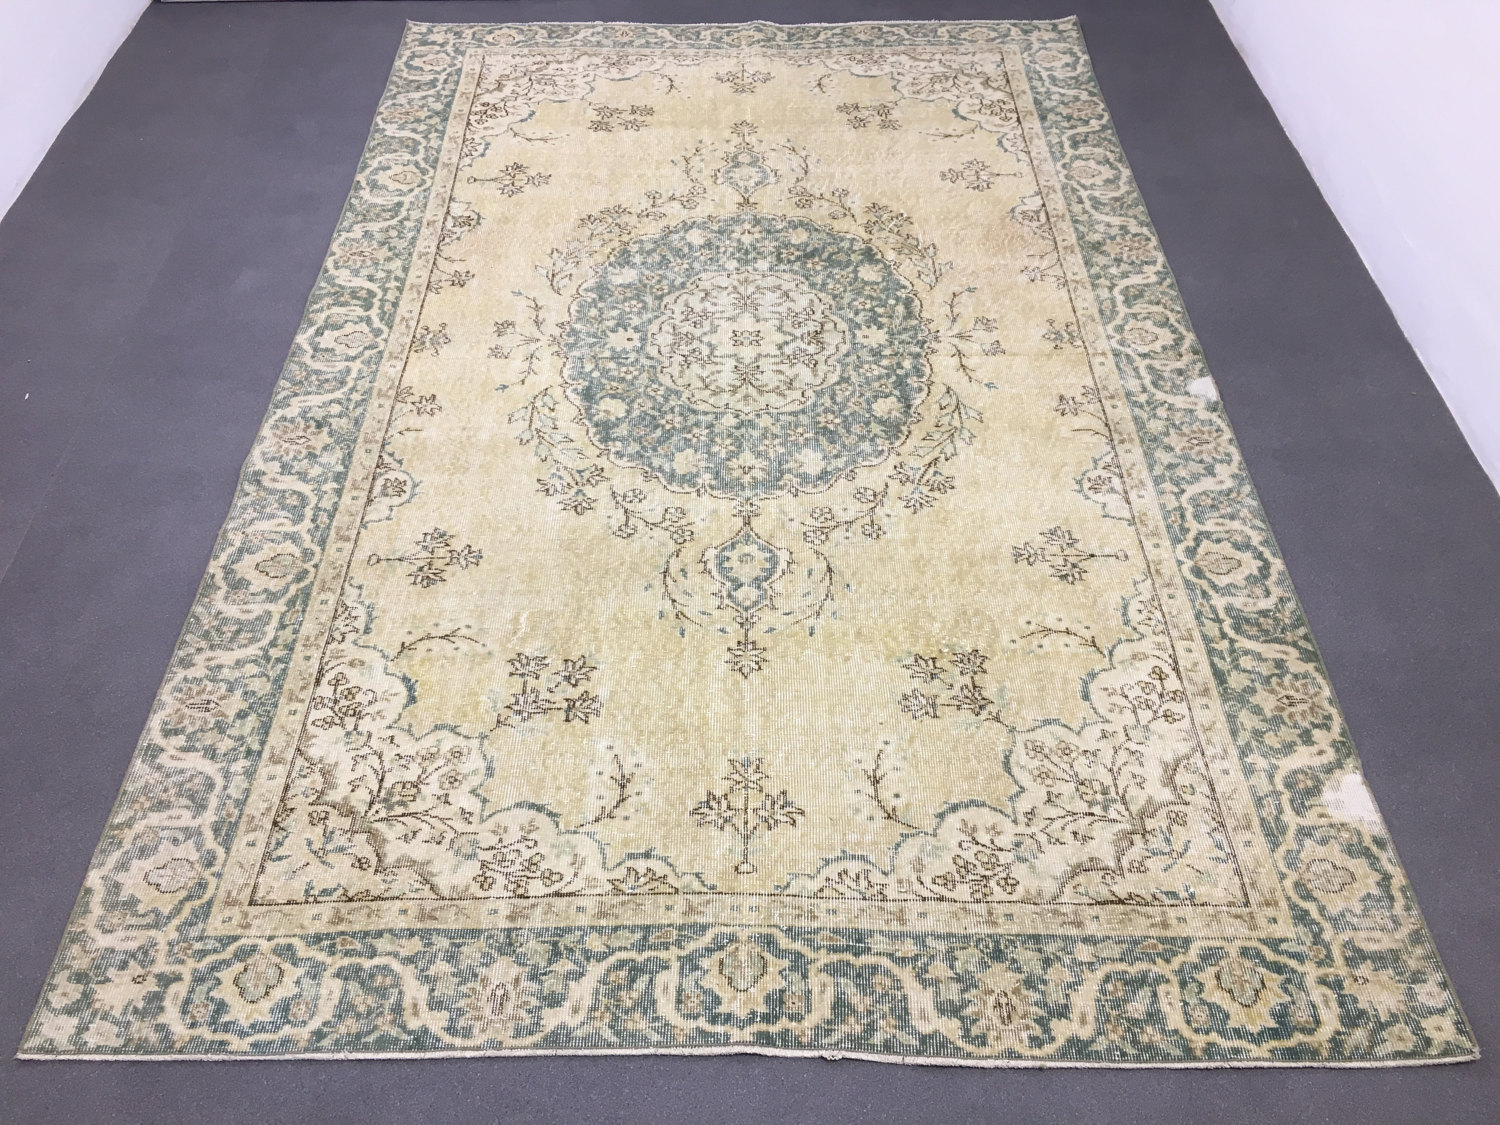 Green overdyed rug Forest Green Home Urban Rug Oushak Rug 64x10ft Muted Color Rug Distressed Rug Overdyed Rug